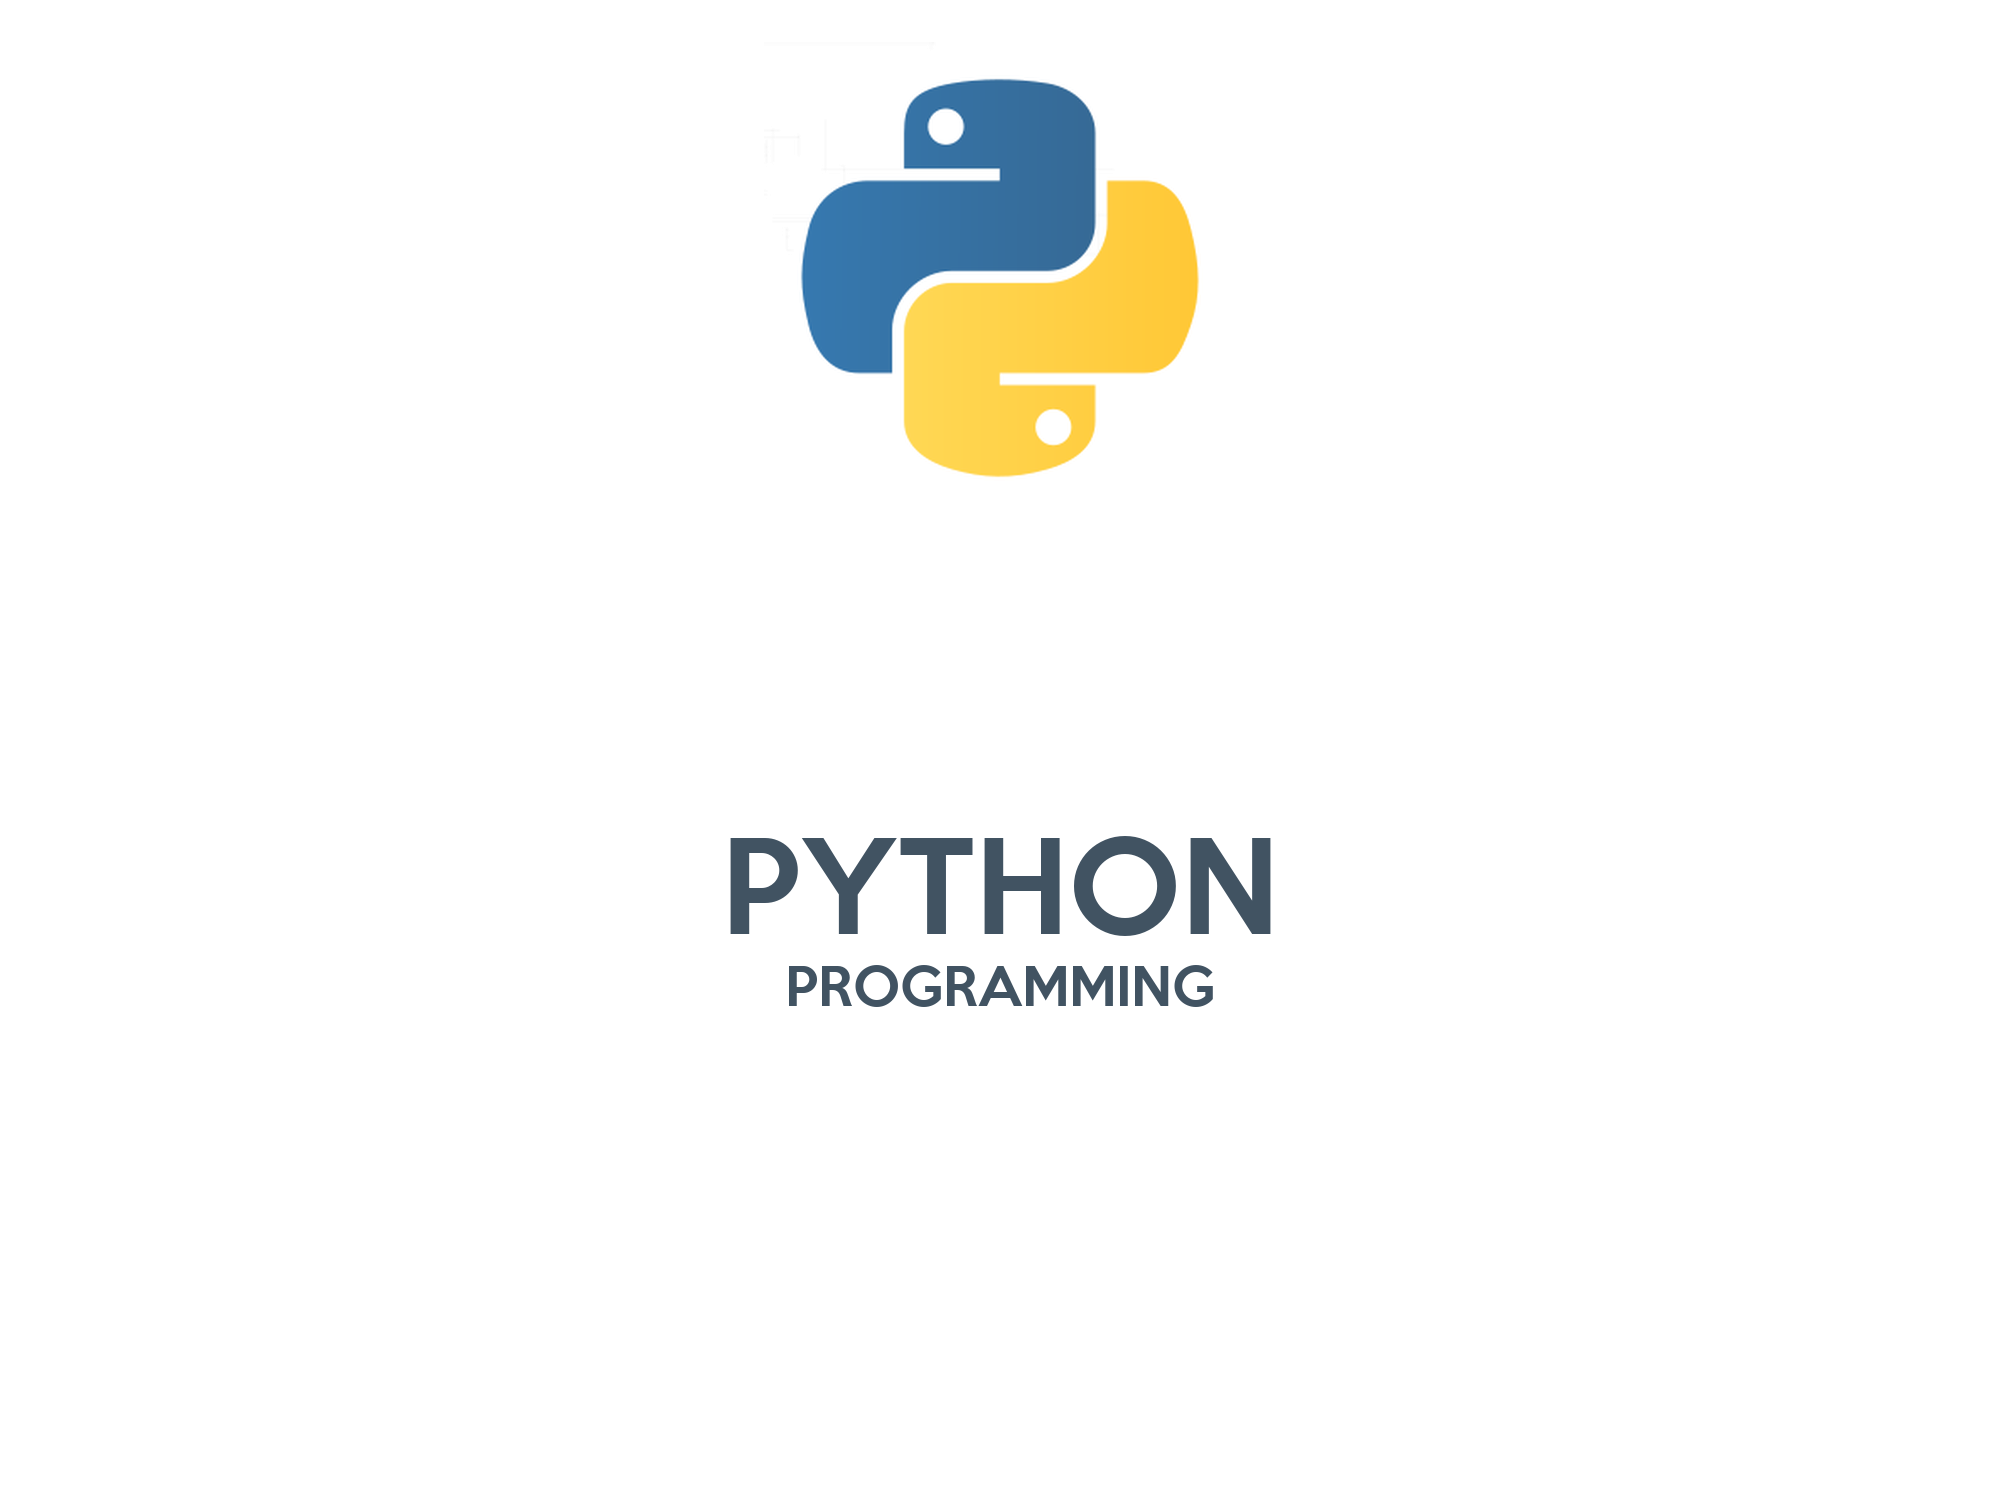 programming images python hd - photo #13